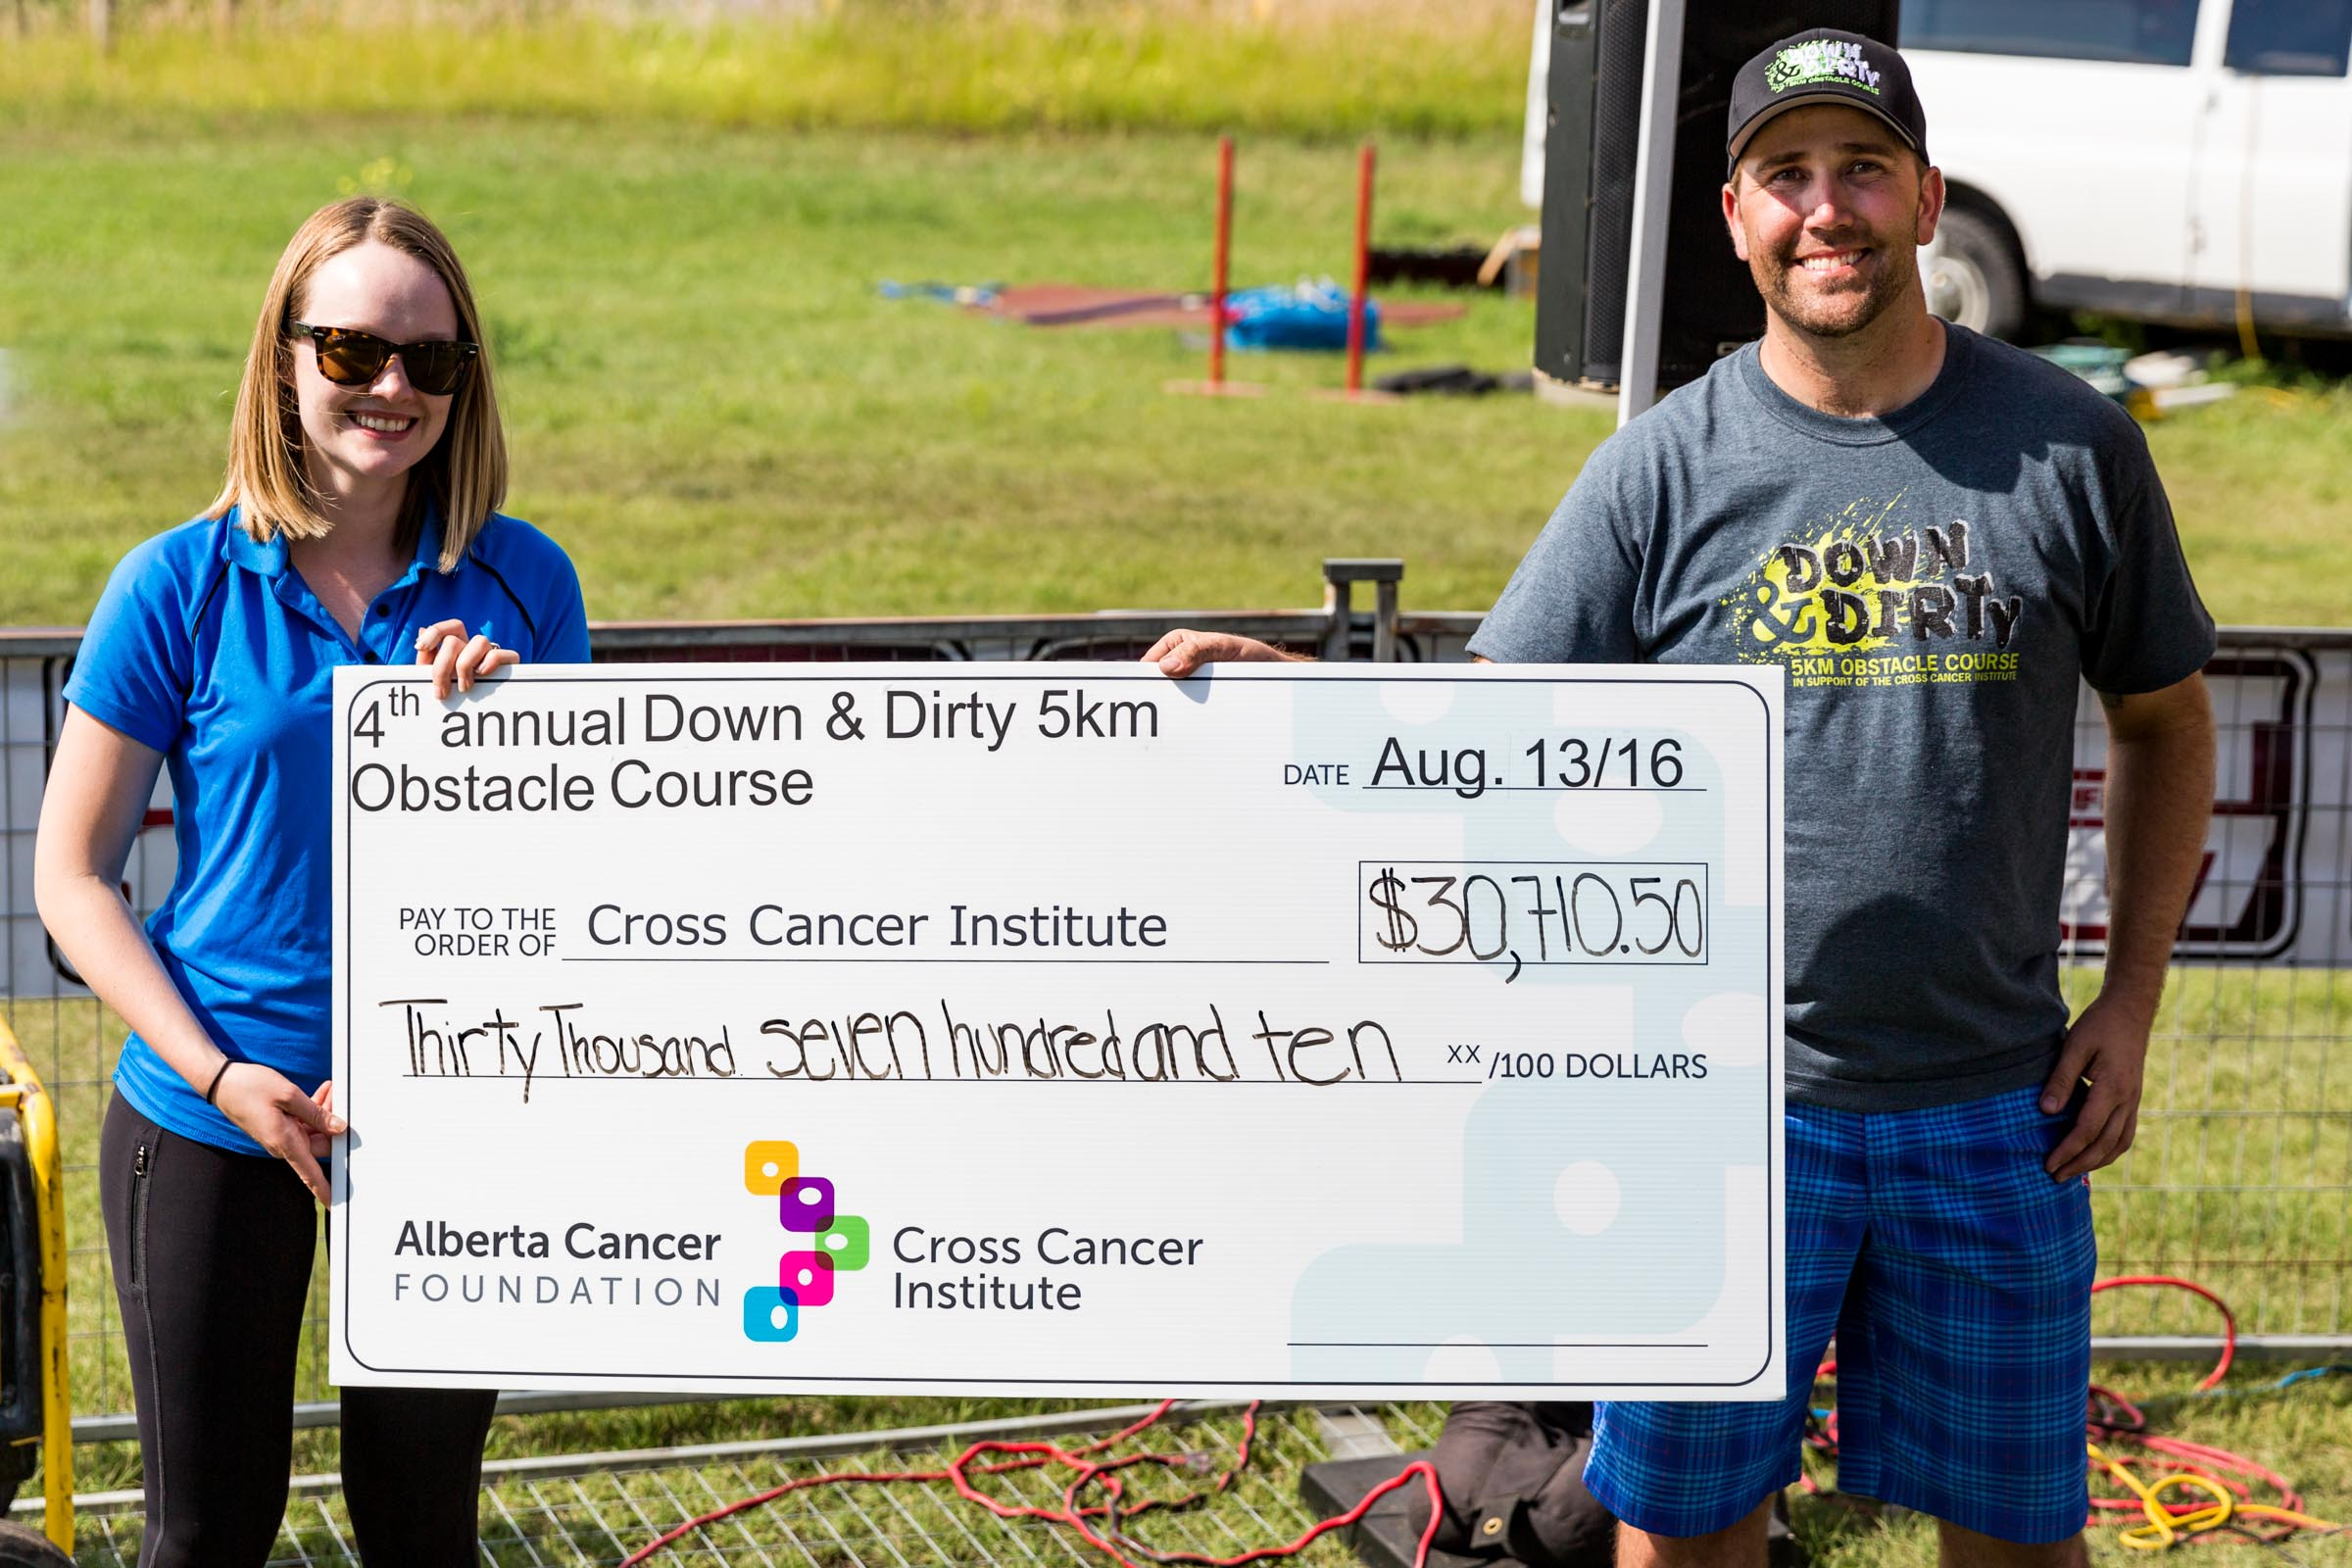 0420_downdirty5k_August 13, 2016.jpg